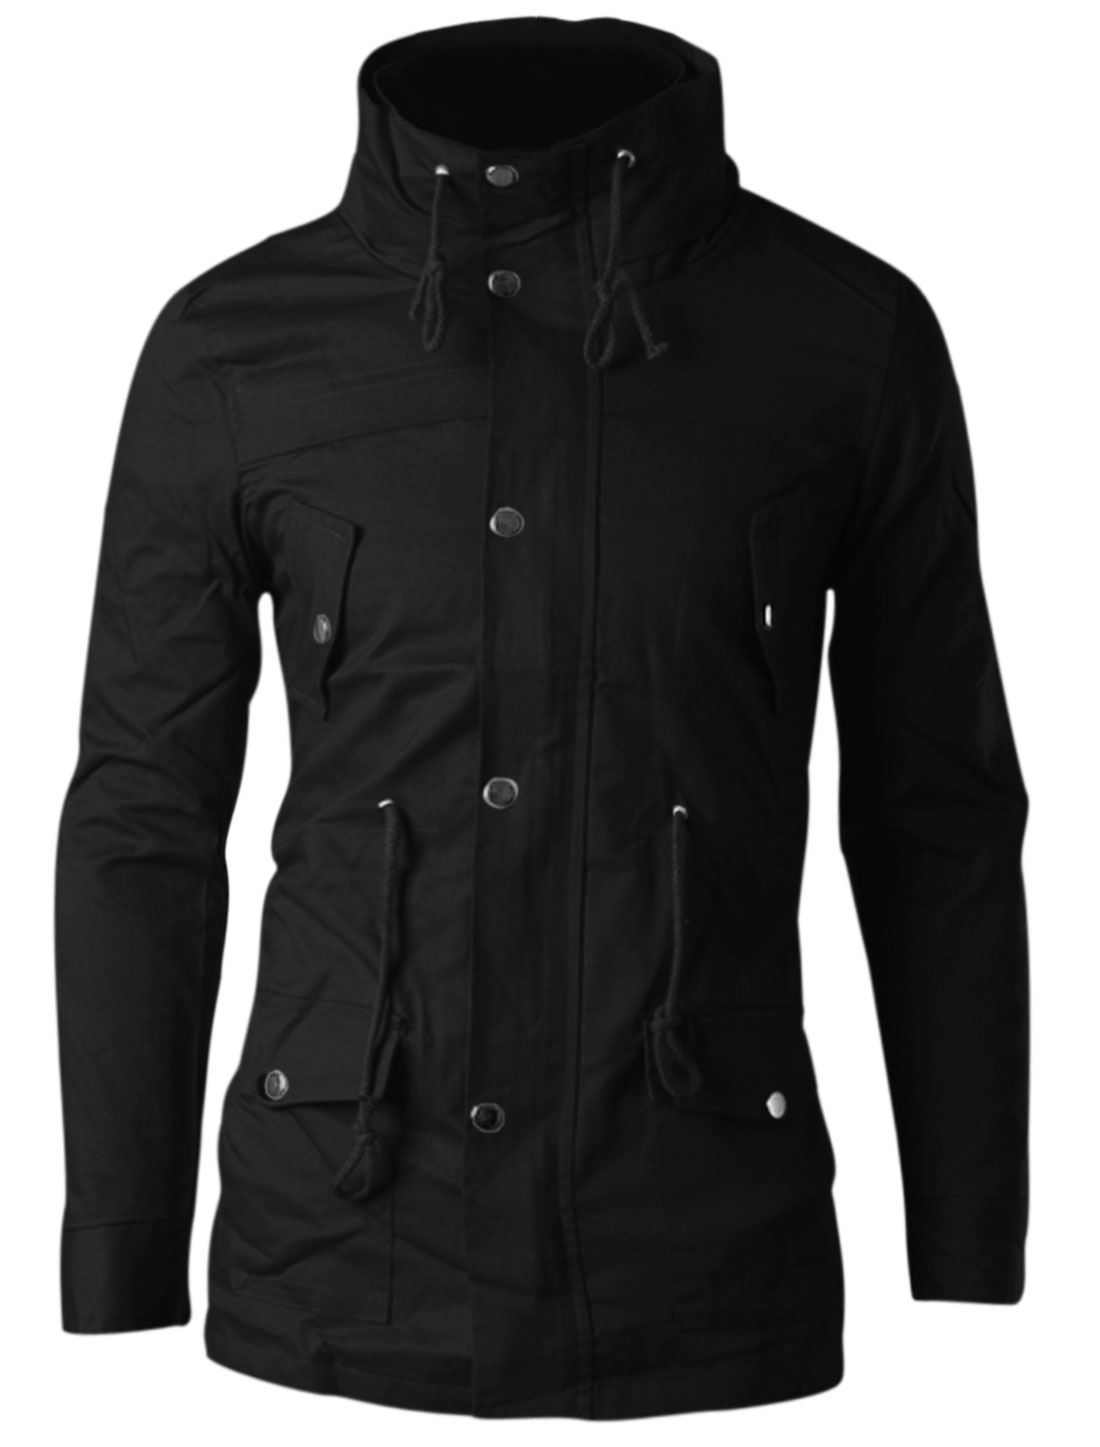 Man Black Zip Up Drawstring Waist Button Closure Front Pockets Jacket M